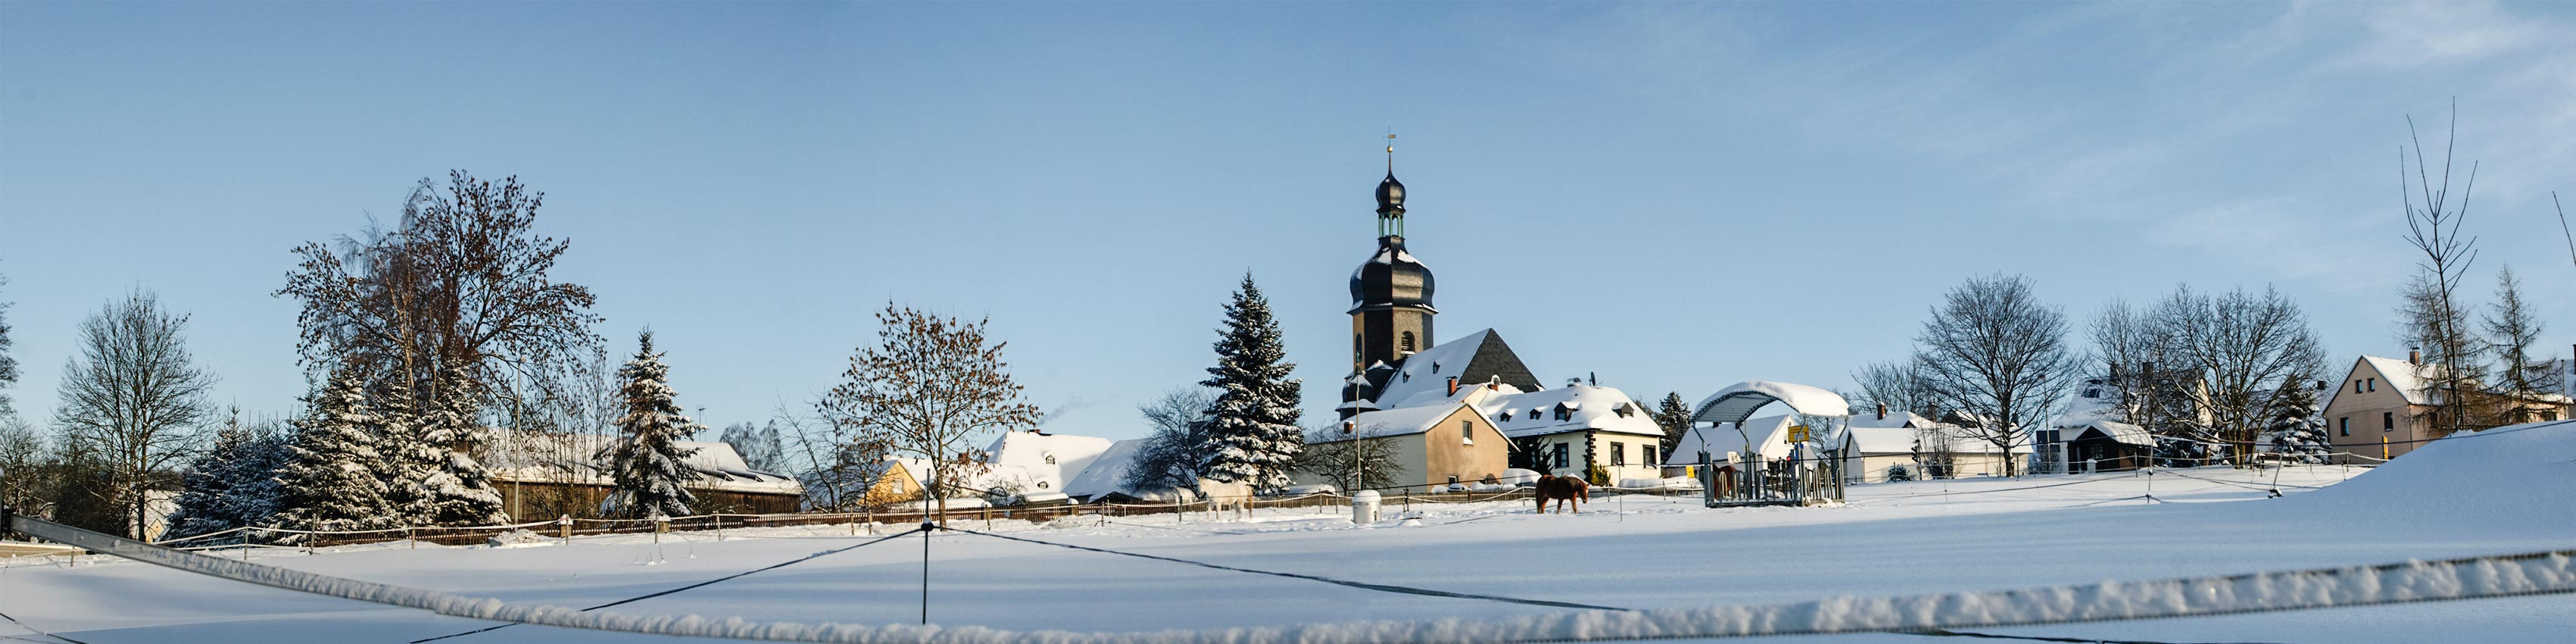 Header Winter Regnitzlosau 219